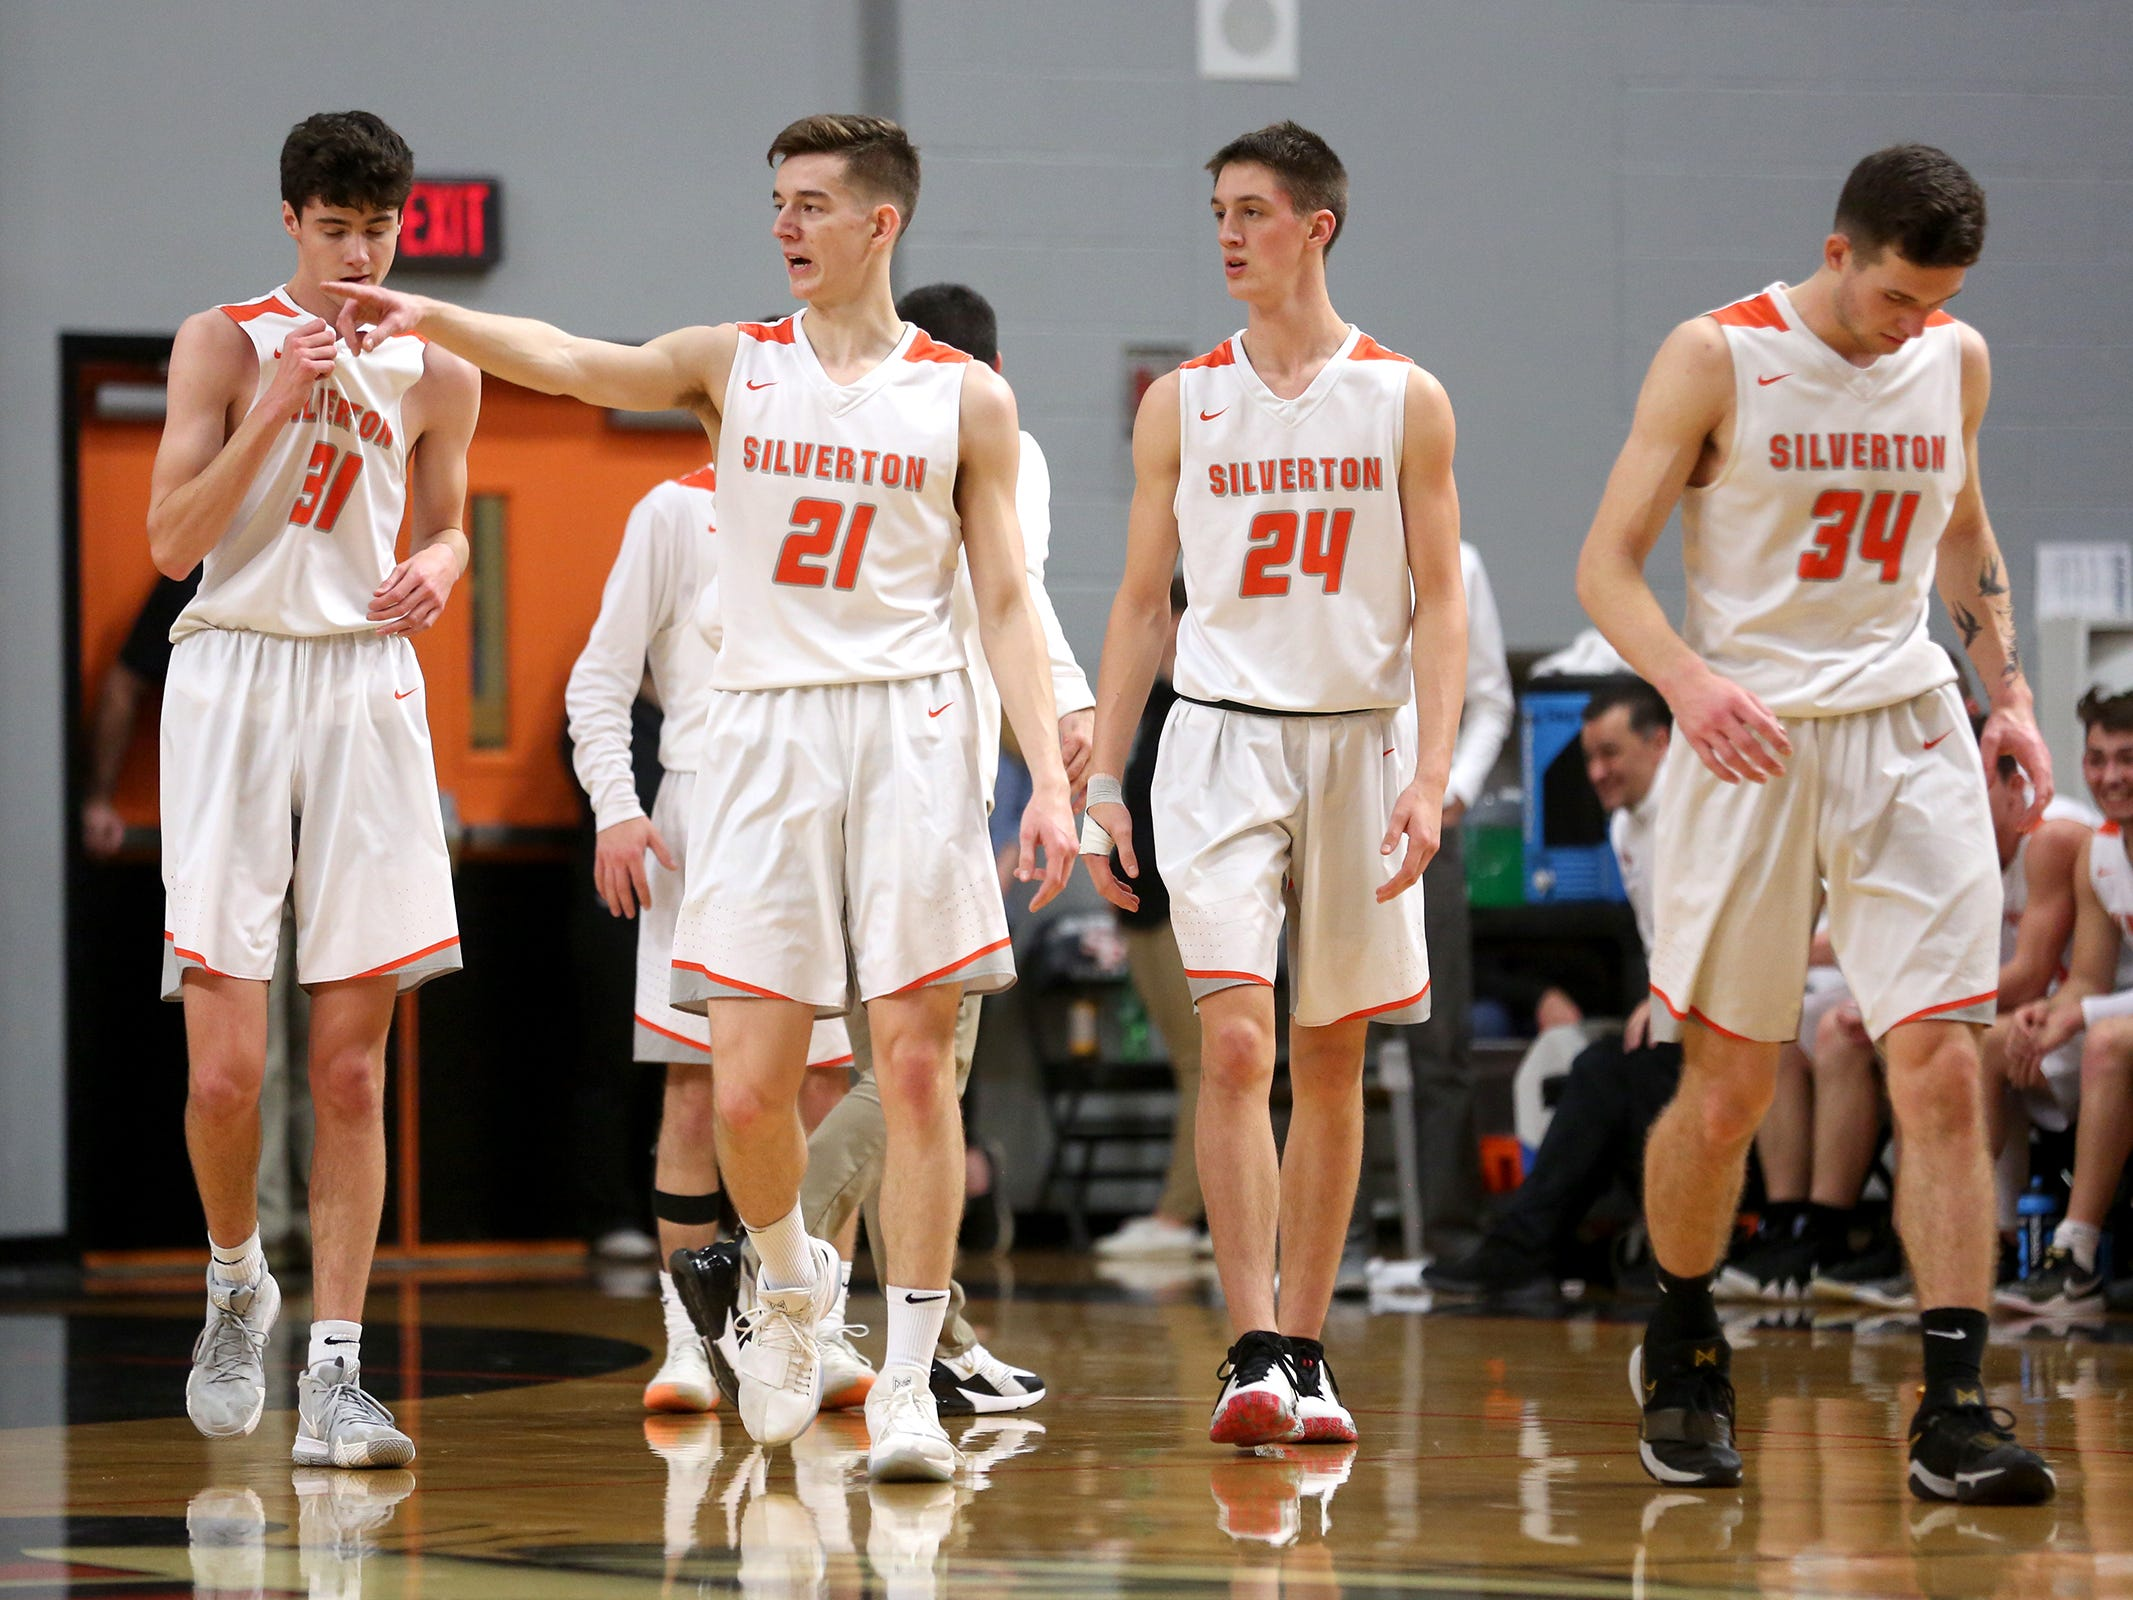 Silverton teammates during the Silverton vs. Springfield boys basketball OSAA state playoffs game at Silverton High School in Silverton on Saturday, March 2, 2019.